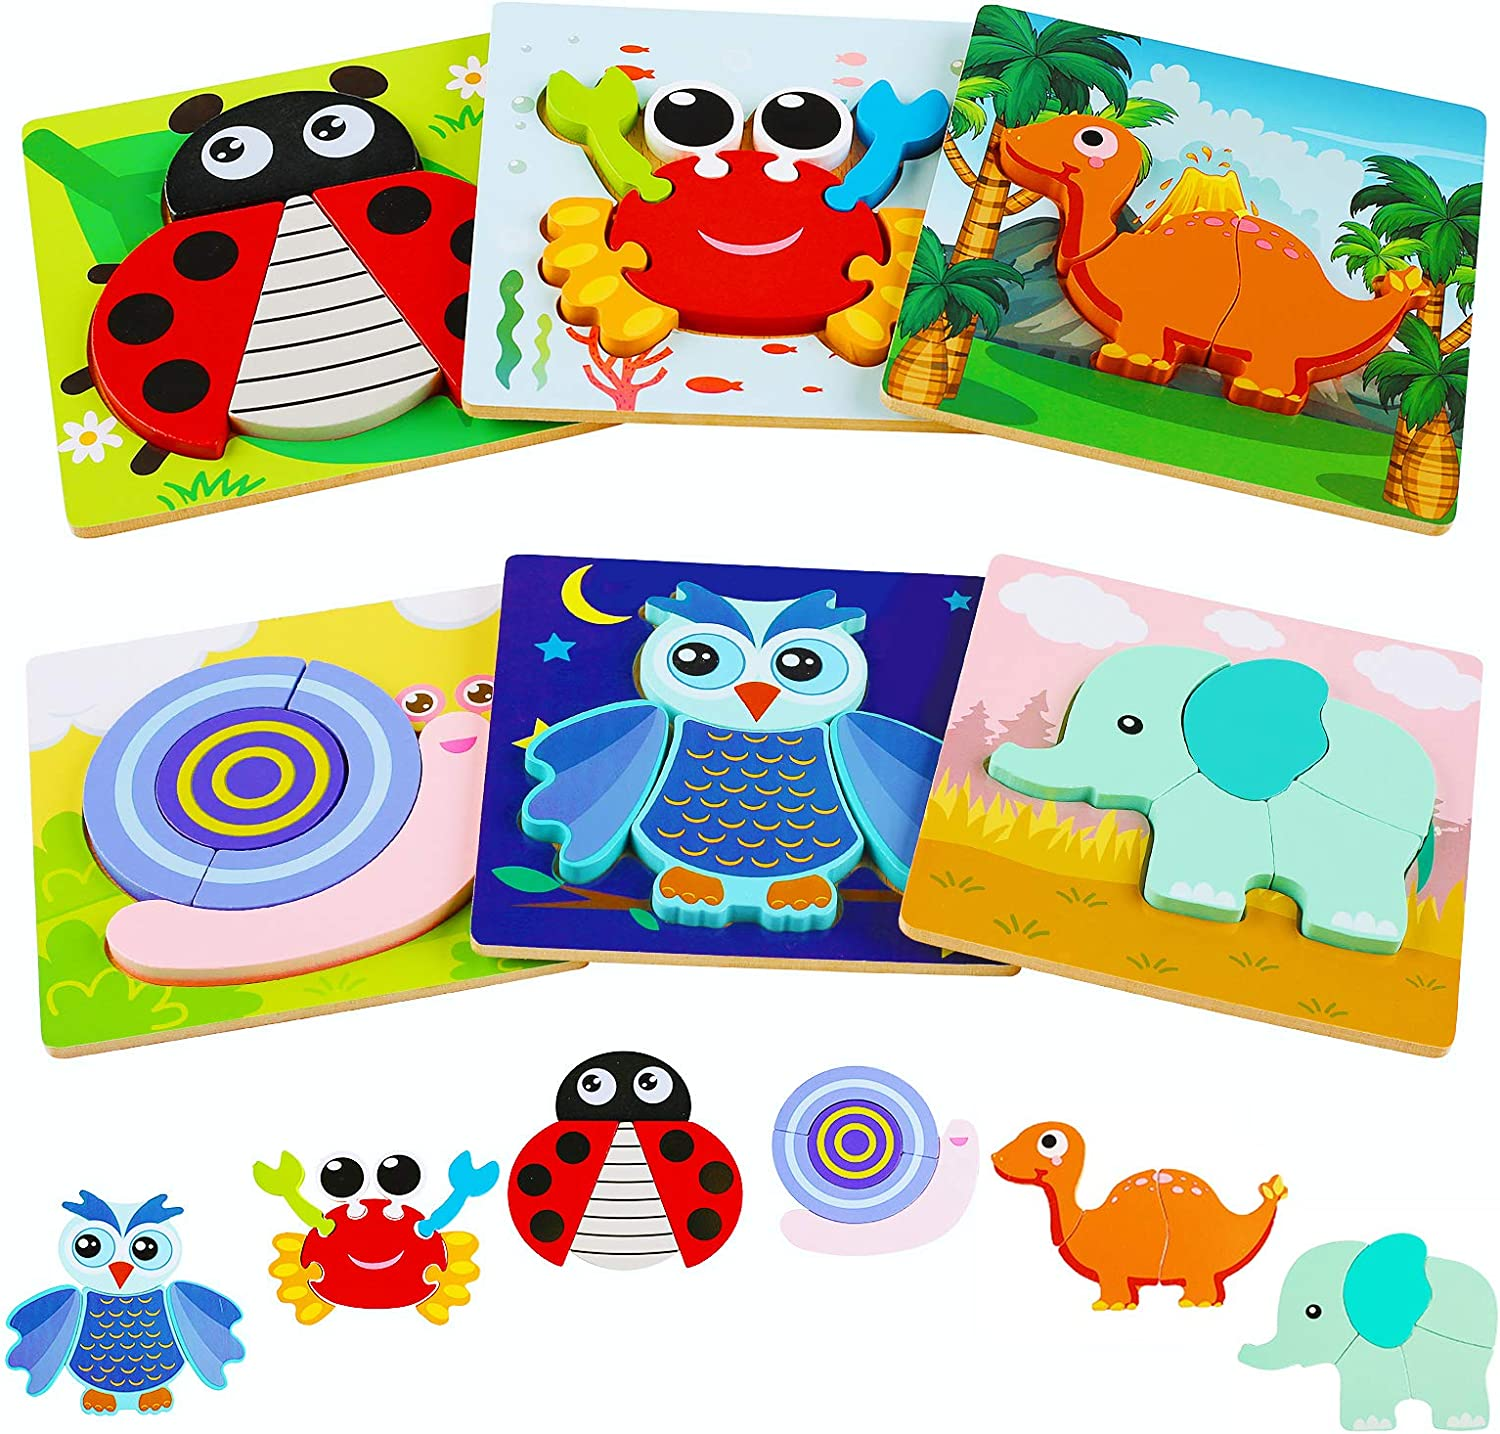 Kesletney Wooden Jigsaw Puzzles for Toddlers, 6 Pack Animal Puzz